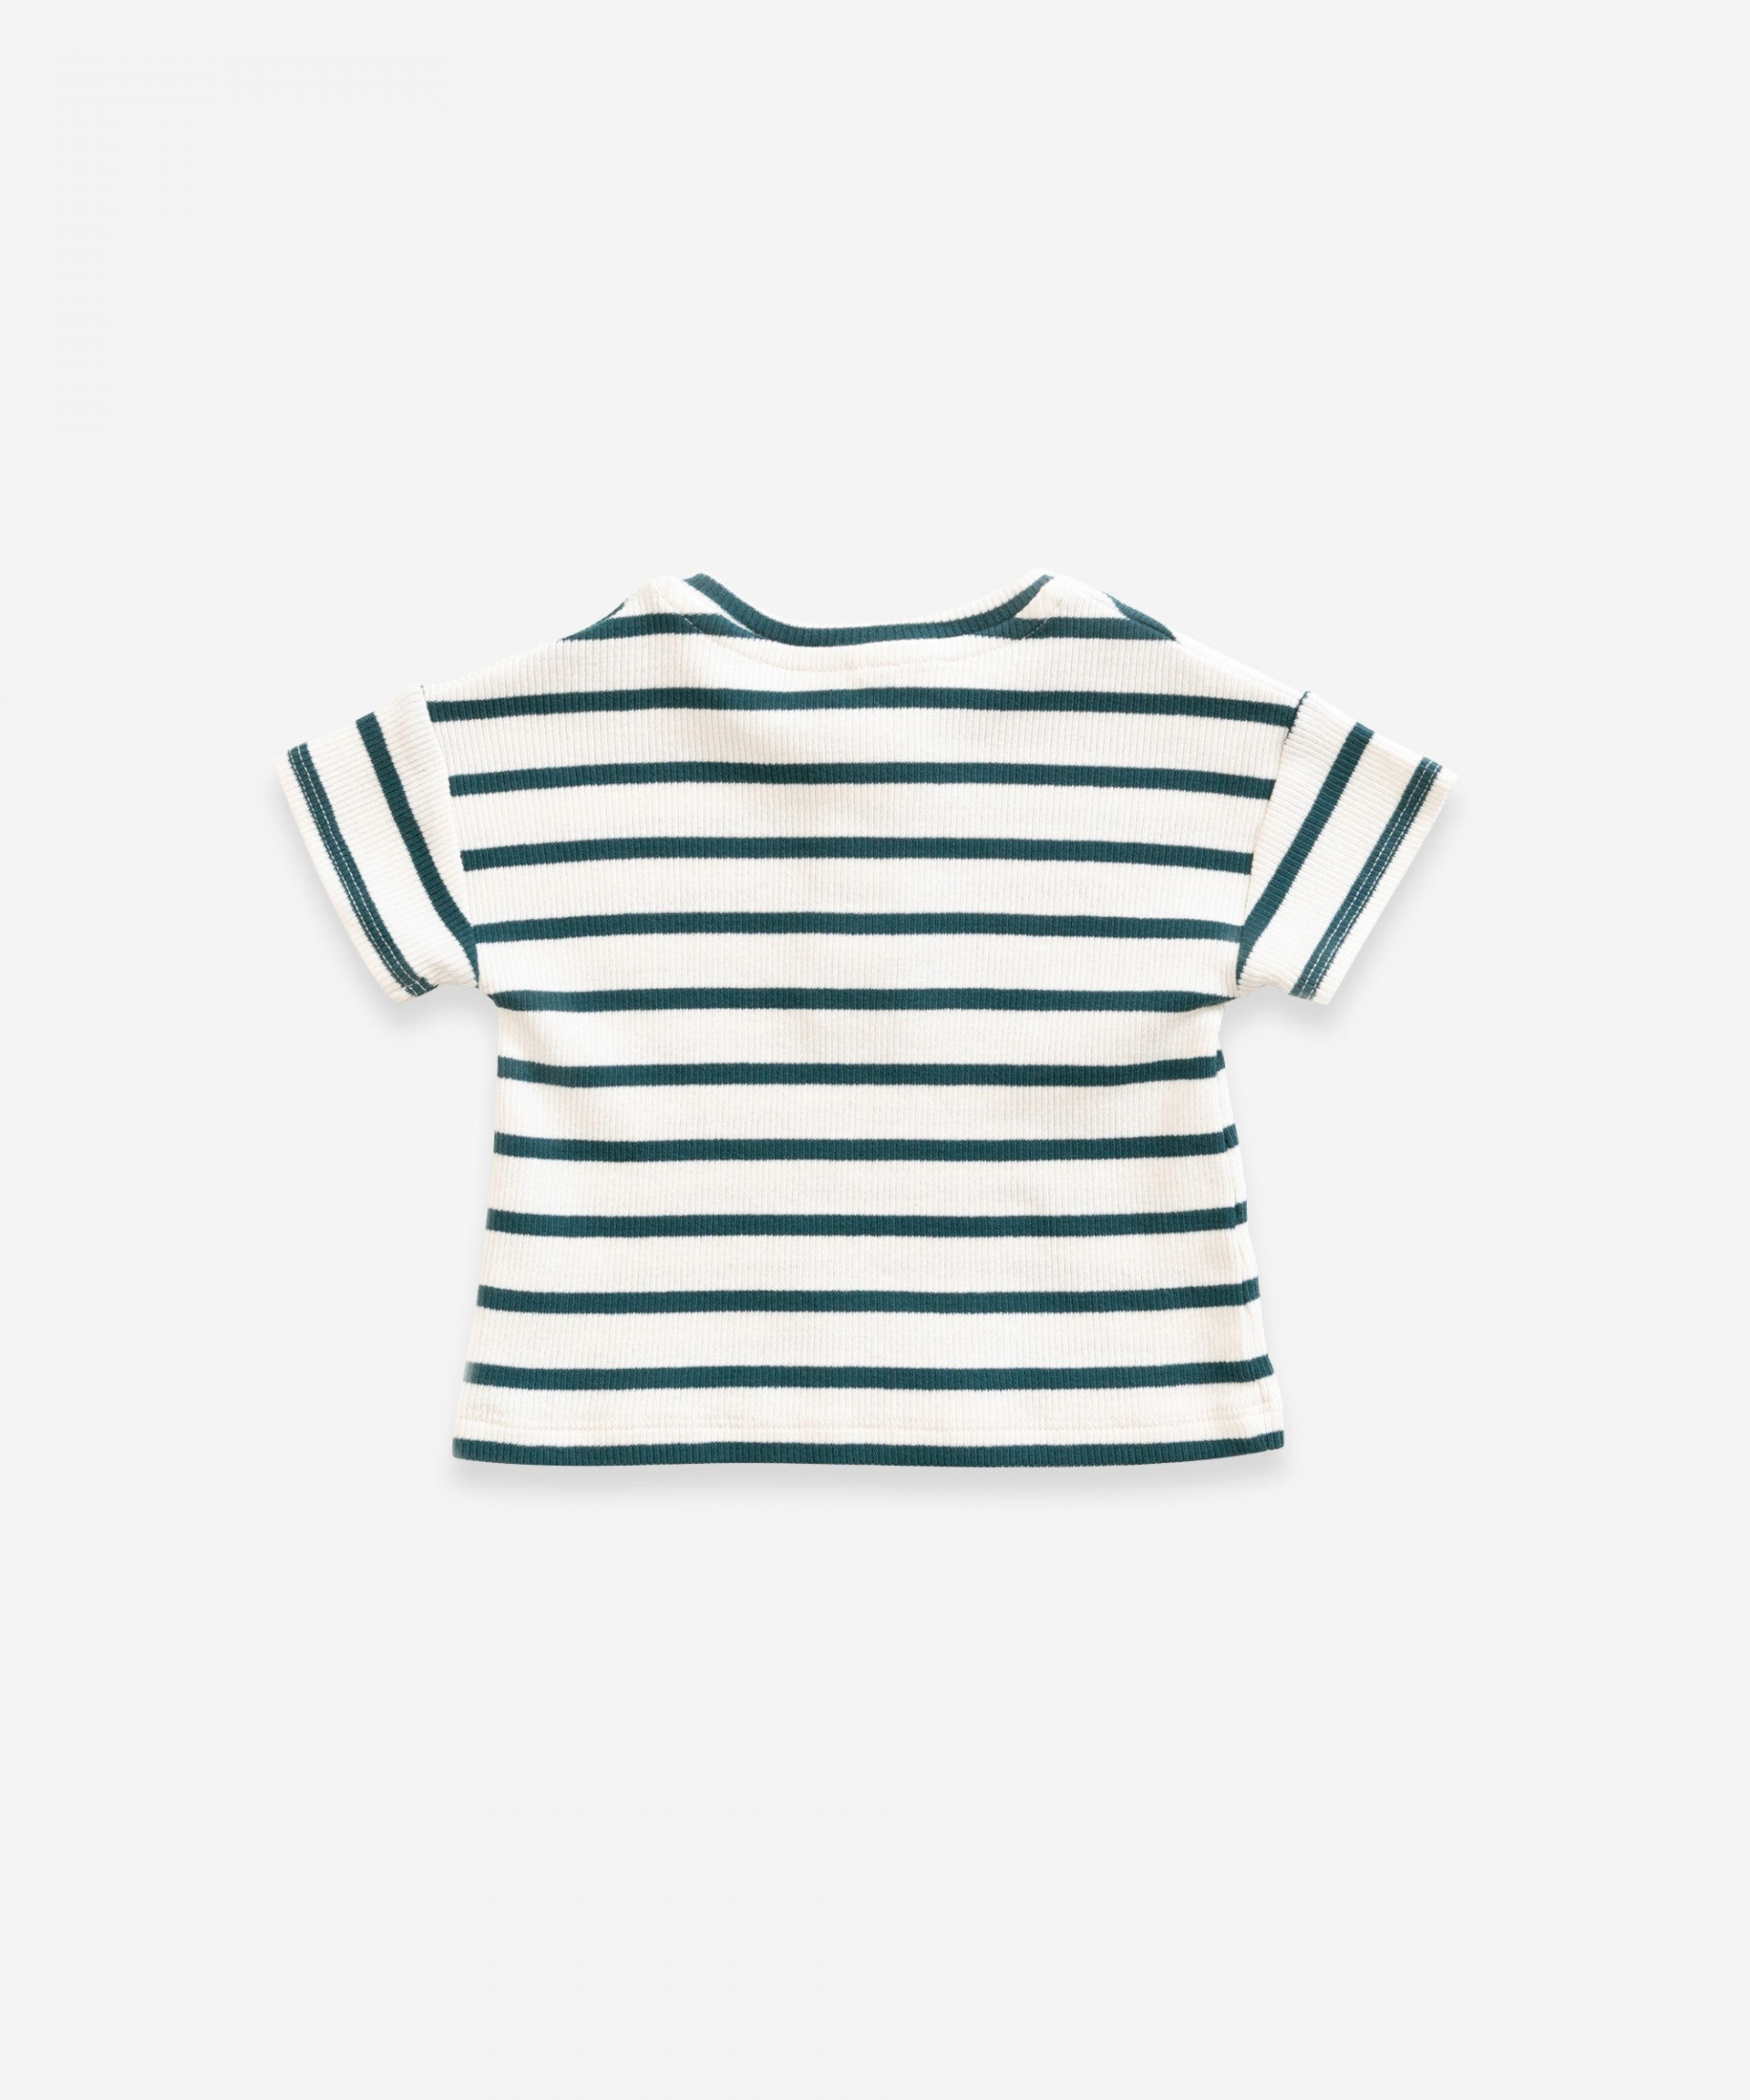 Striped t-shirt in organic cotton | Weaving